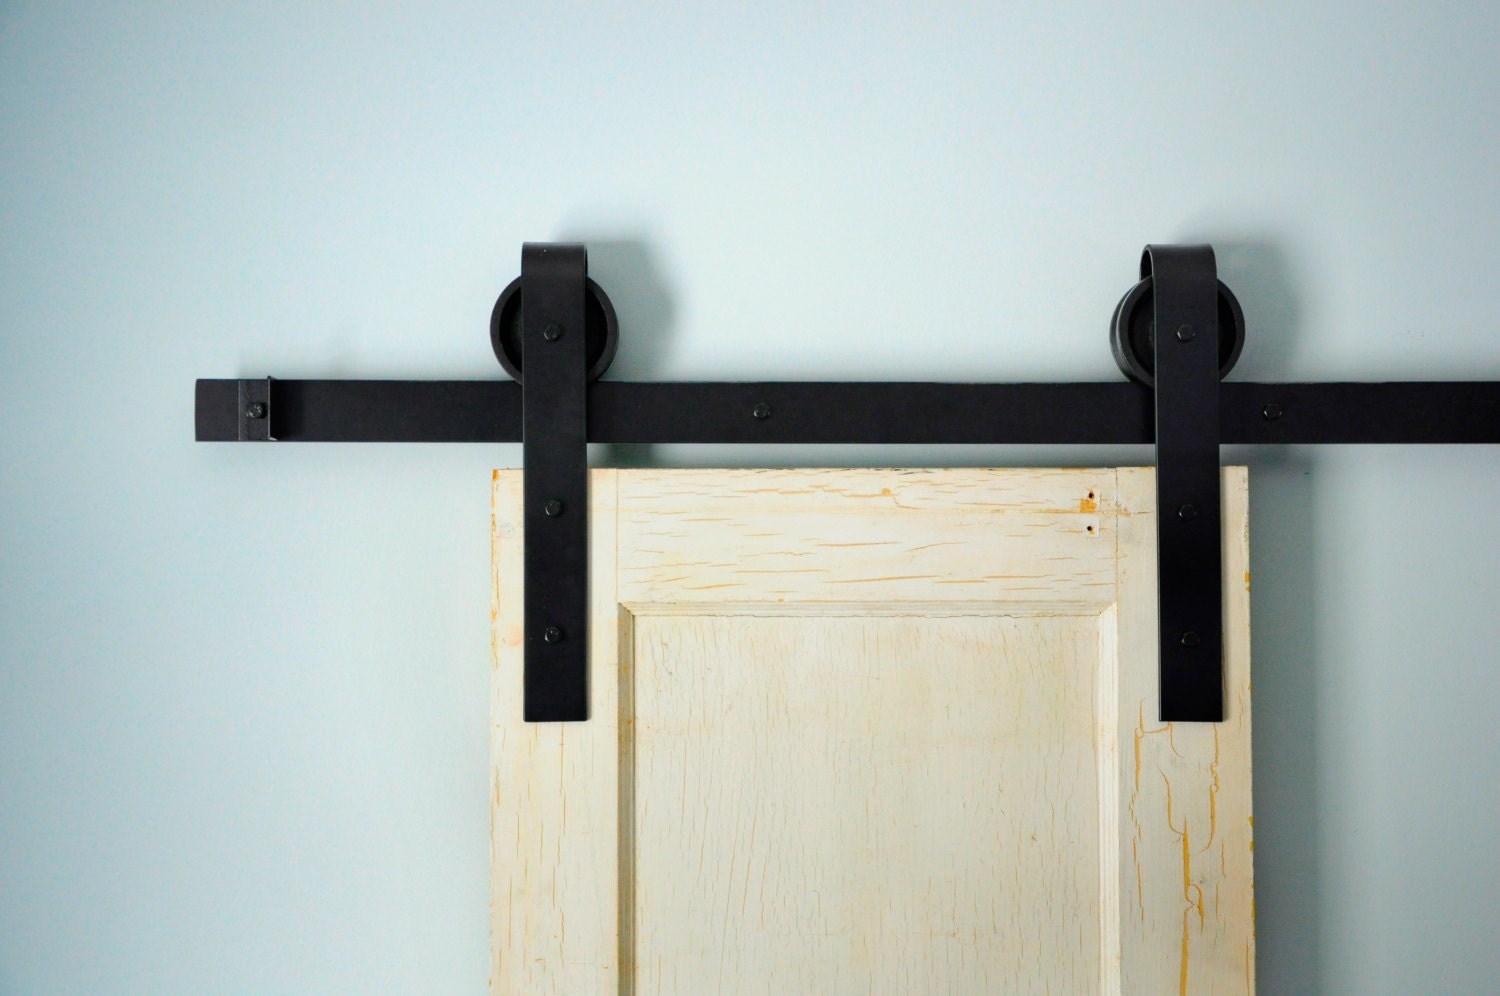 Barn Door Hardware Kit By Architecturalopening On Etsy